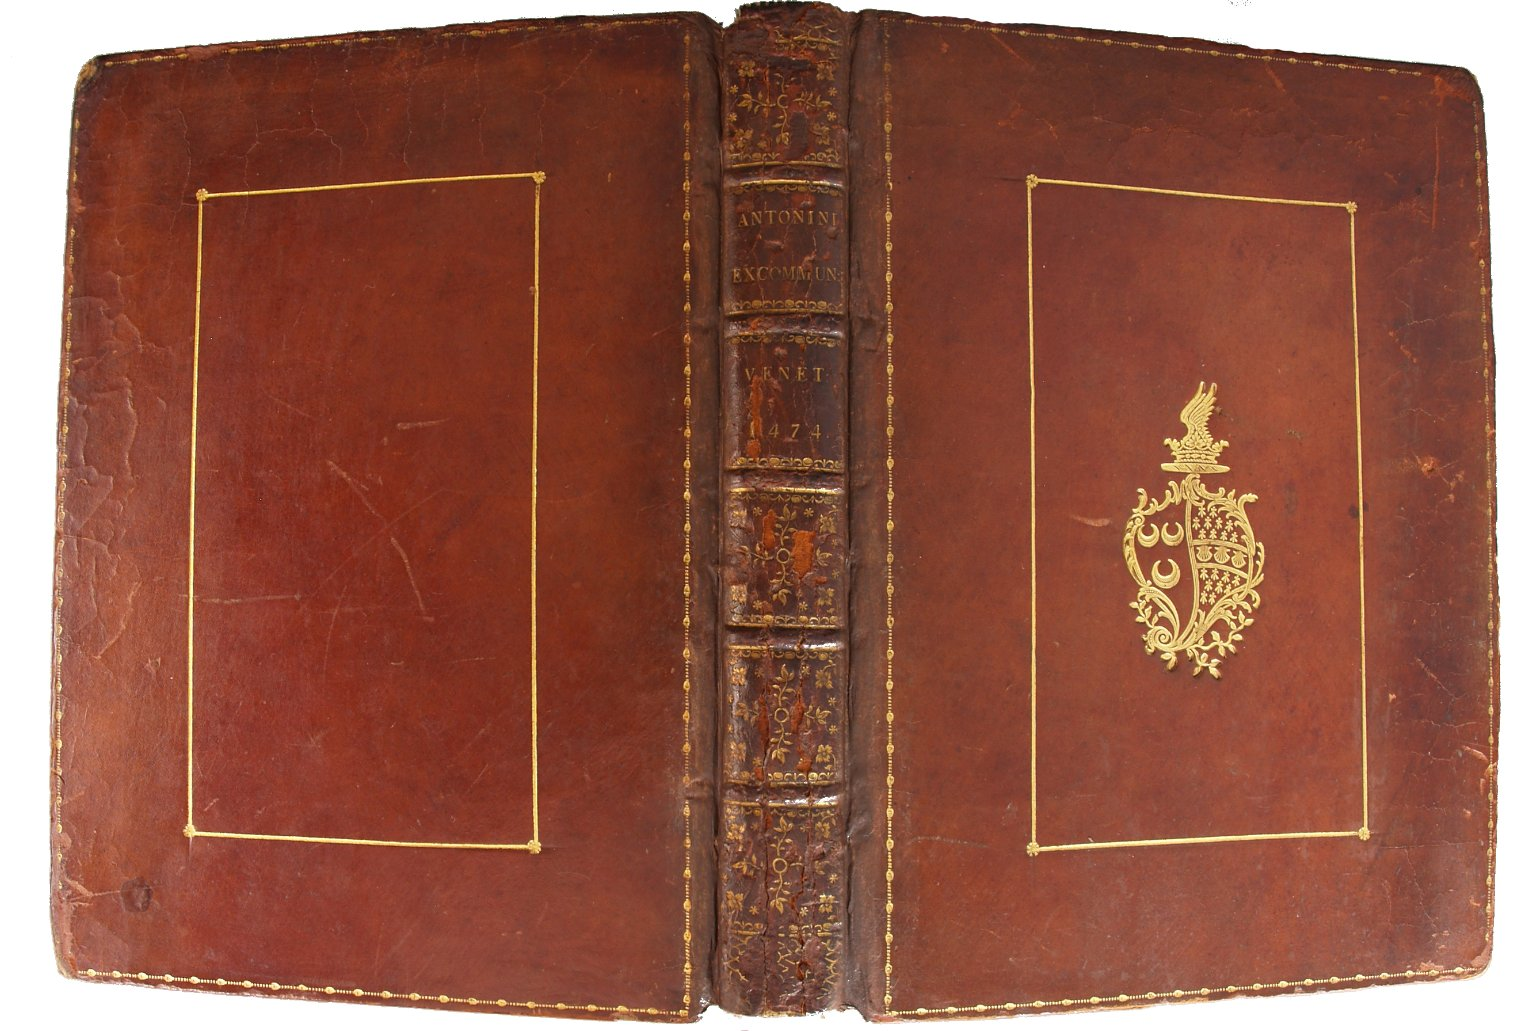 Spine and covers, INC A684.